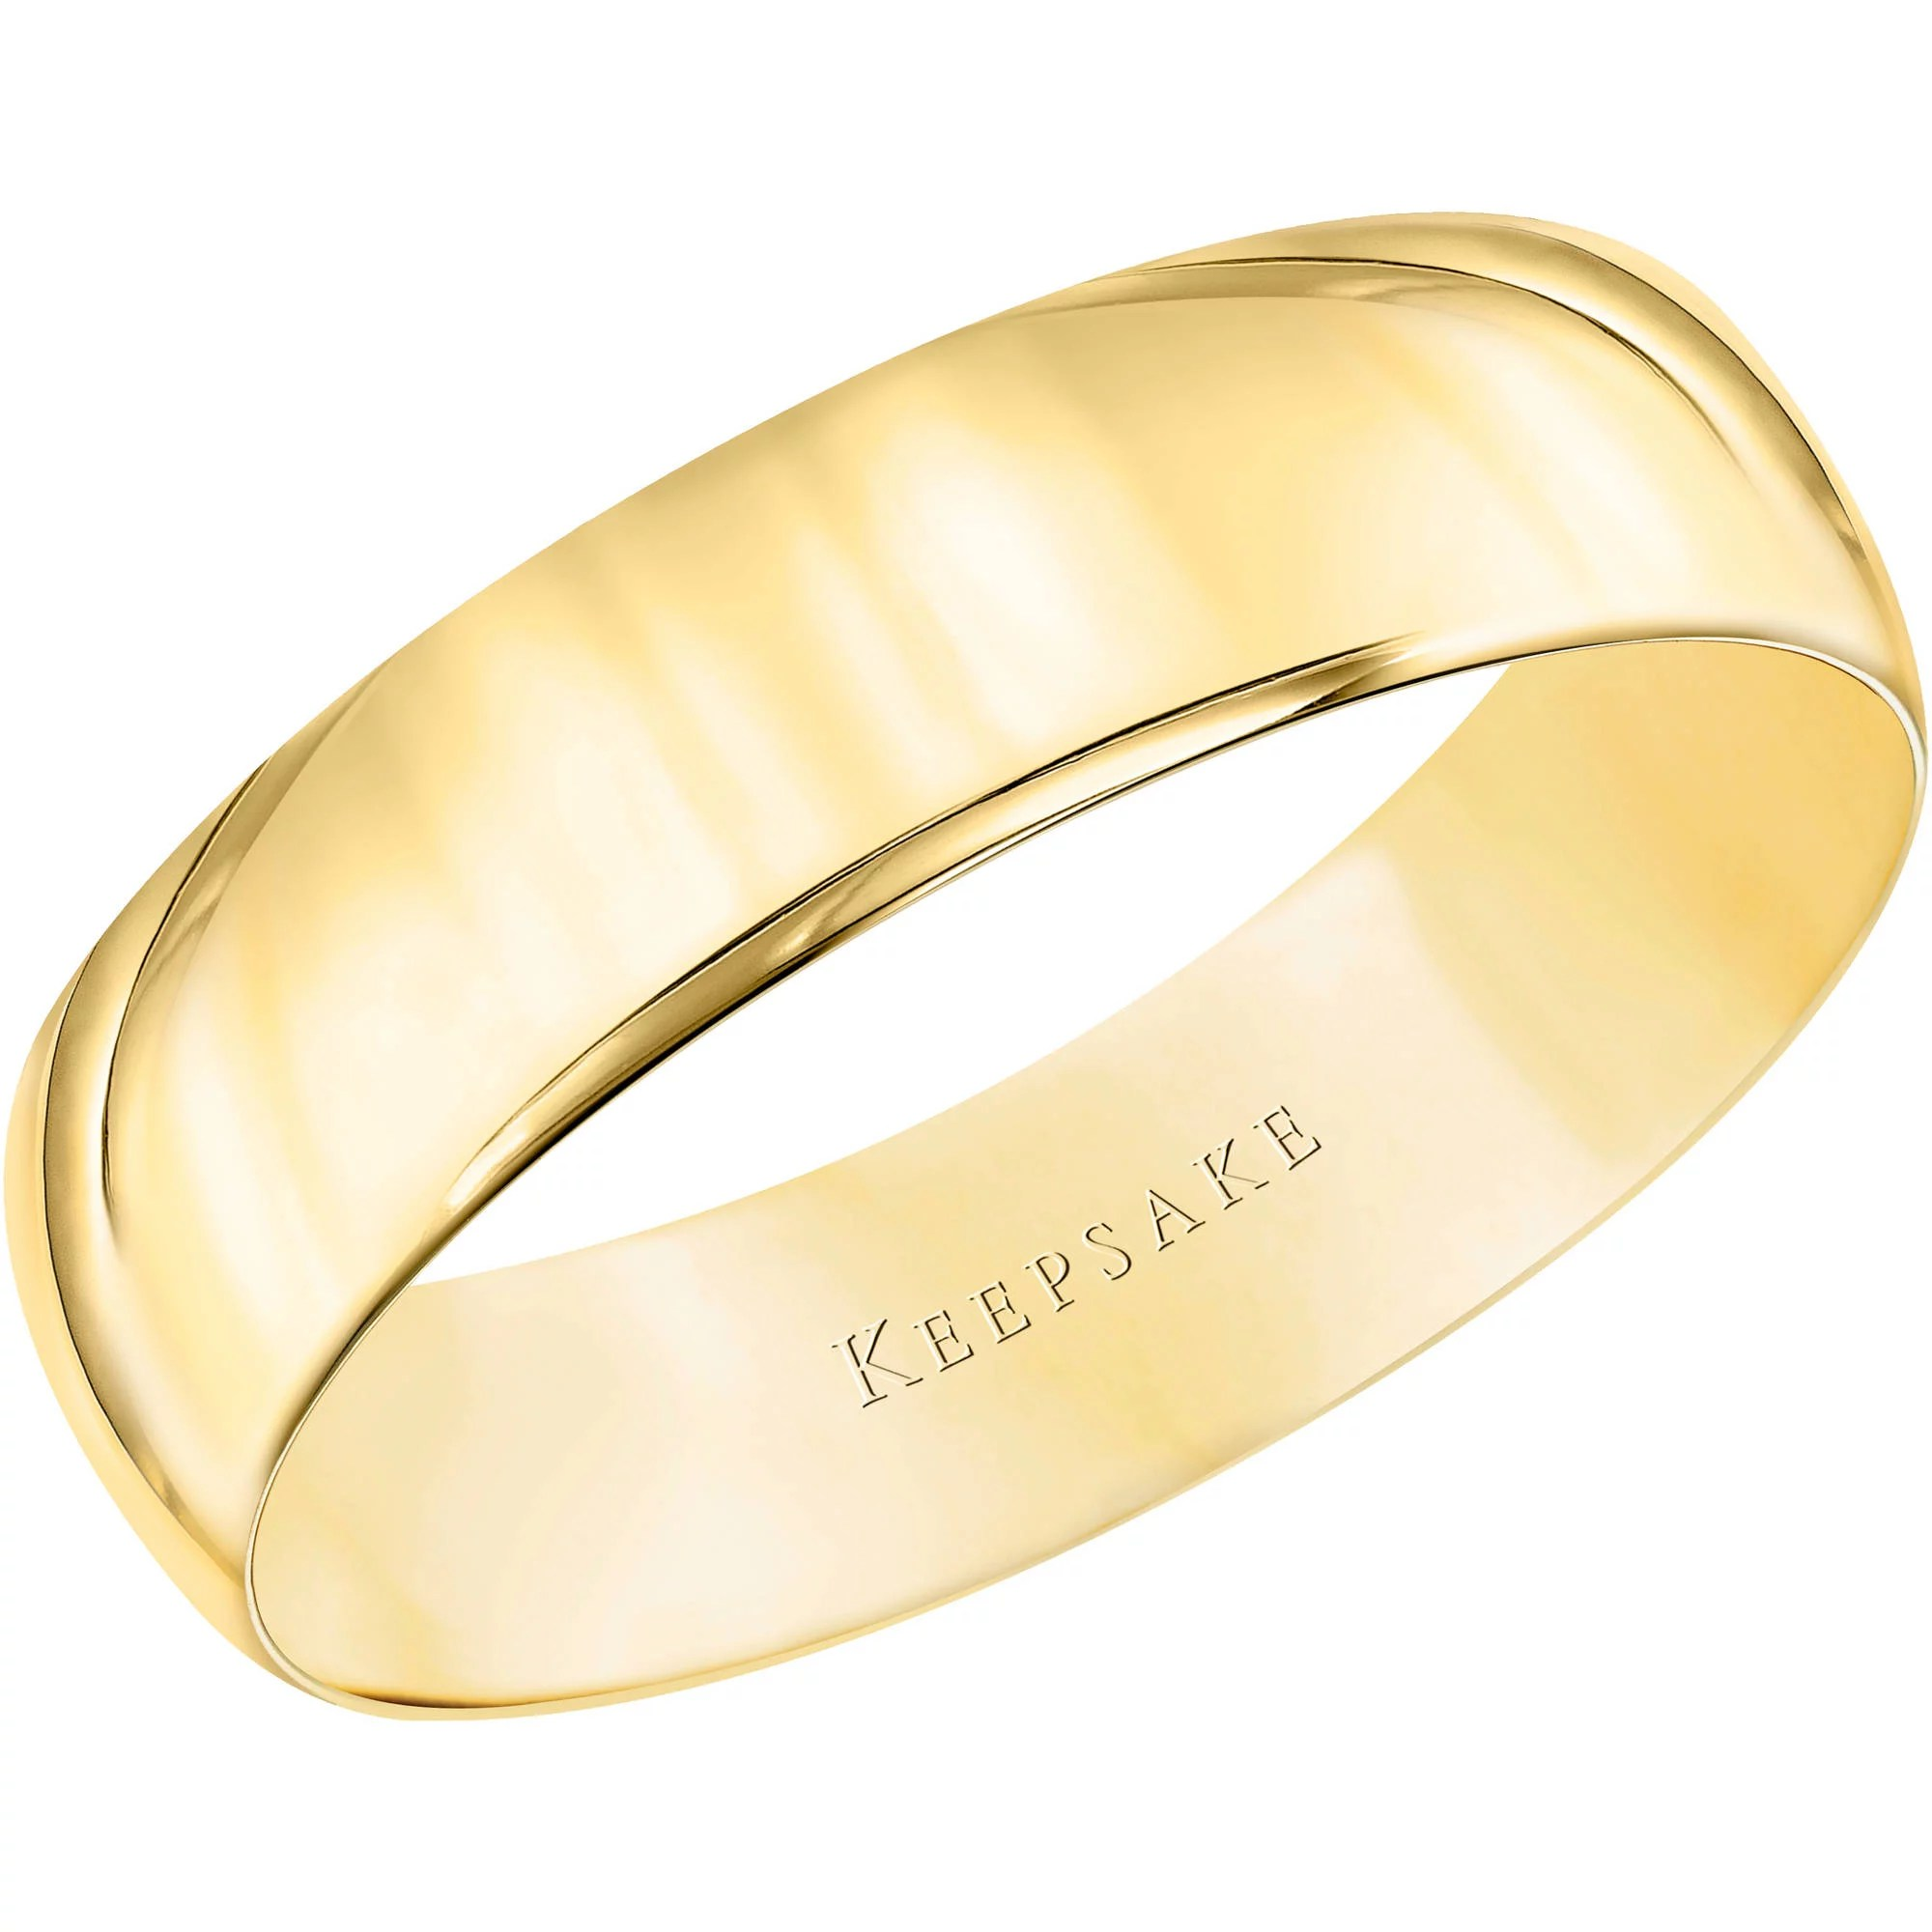 Zlbgieie mens country wedding bands Keepsake 10kt Yellow Gold Comfort Fit Wedding Band 5 5mm